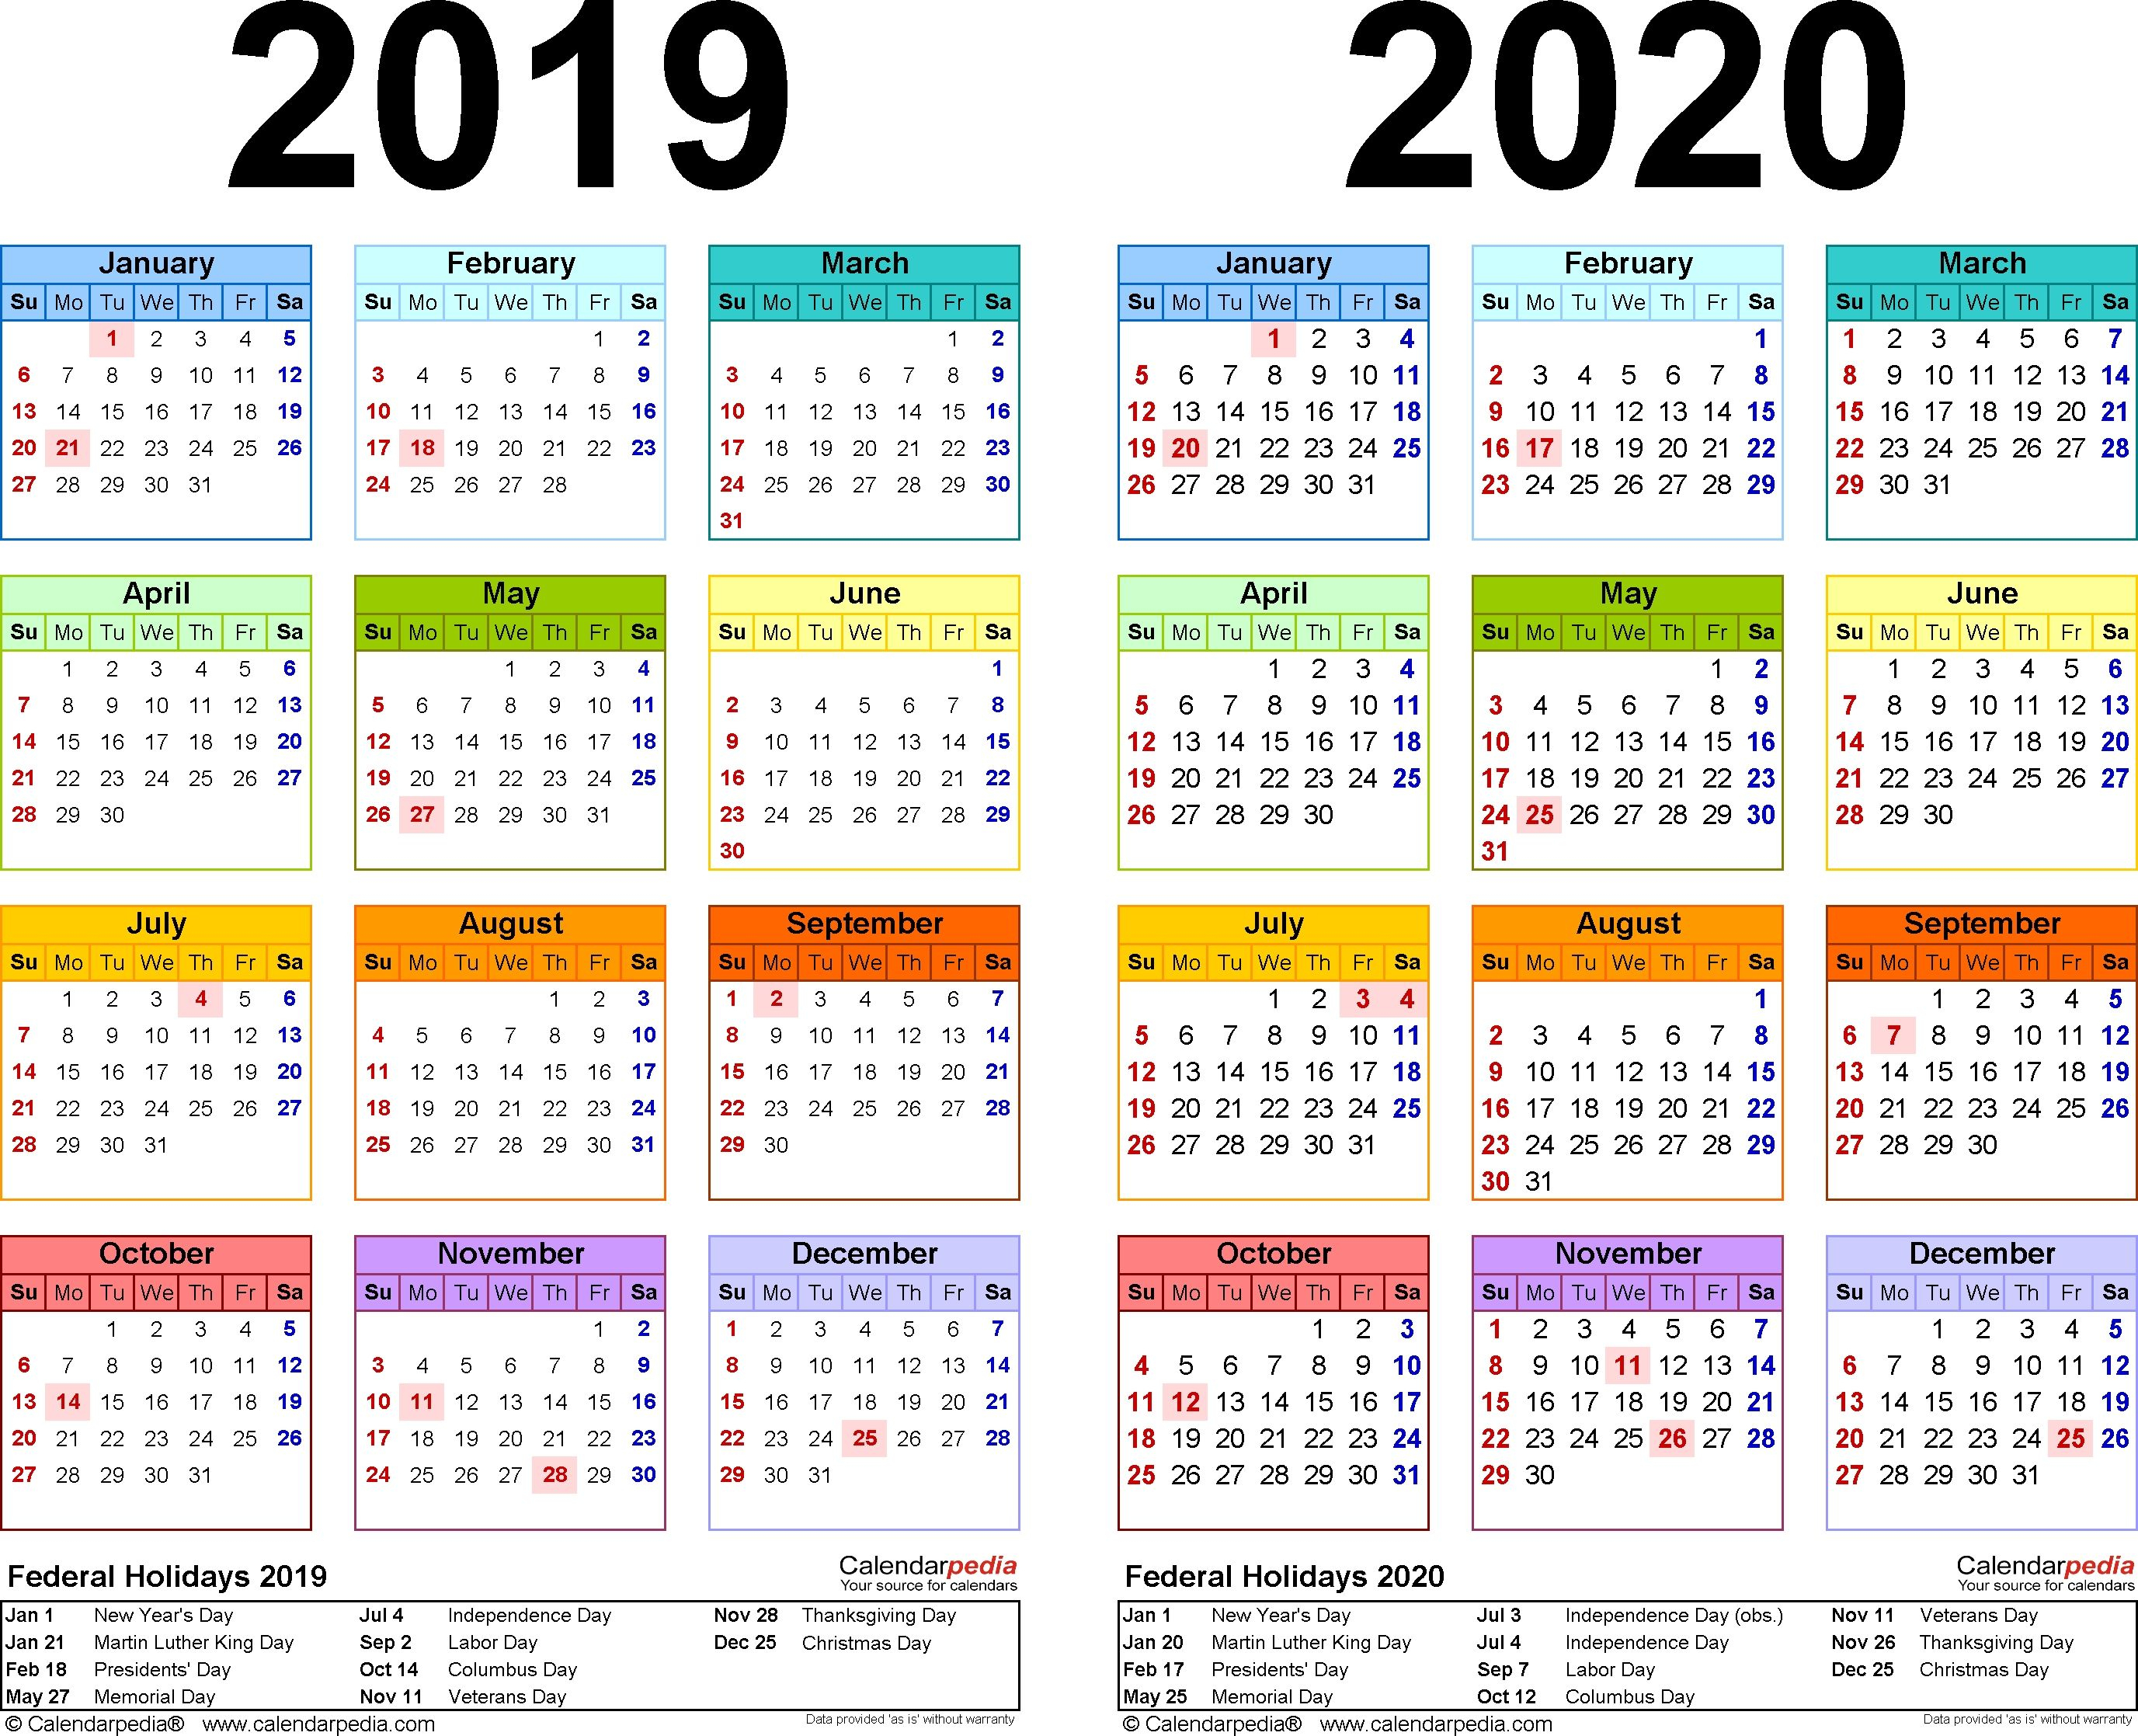 Weekly Calendar 2020 Excel  Yatay.horizonconsulting.co intended for 2020 Excel Calendar Free